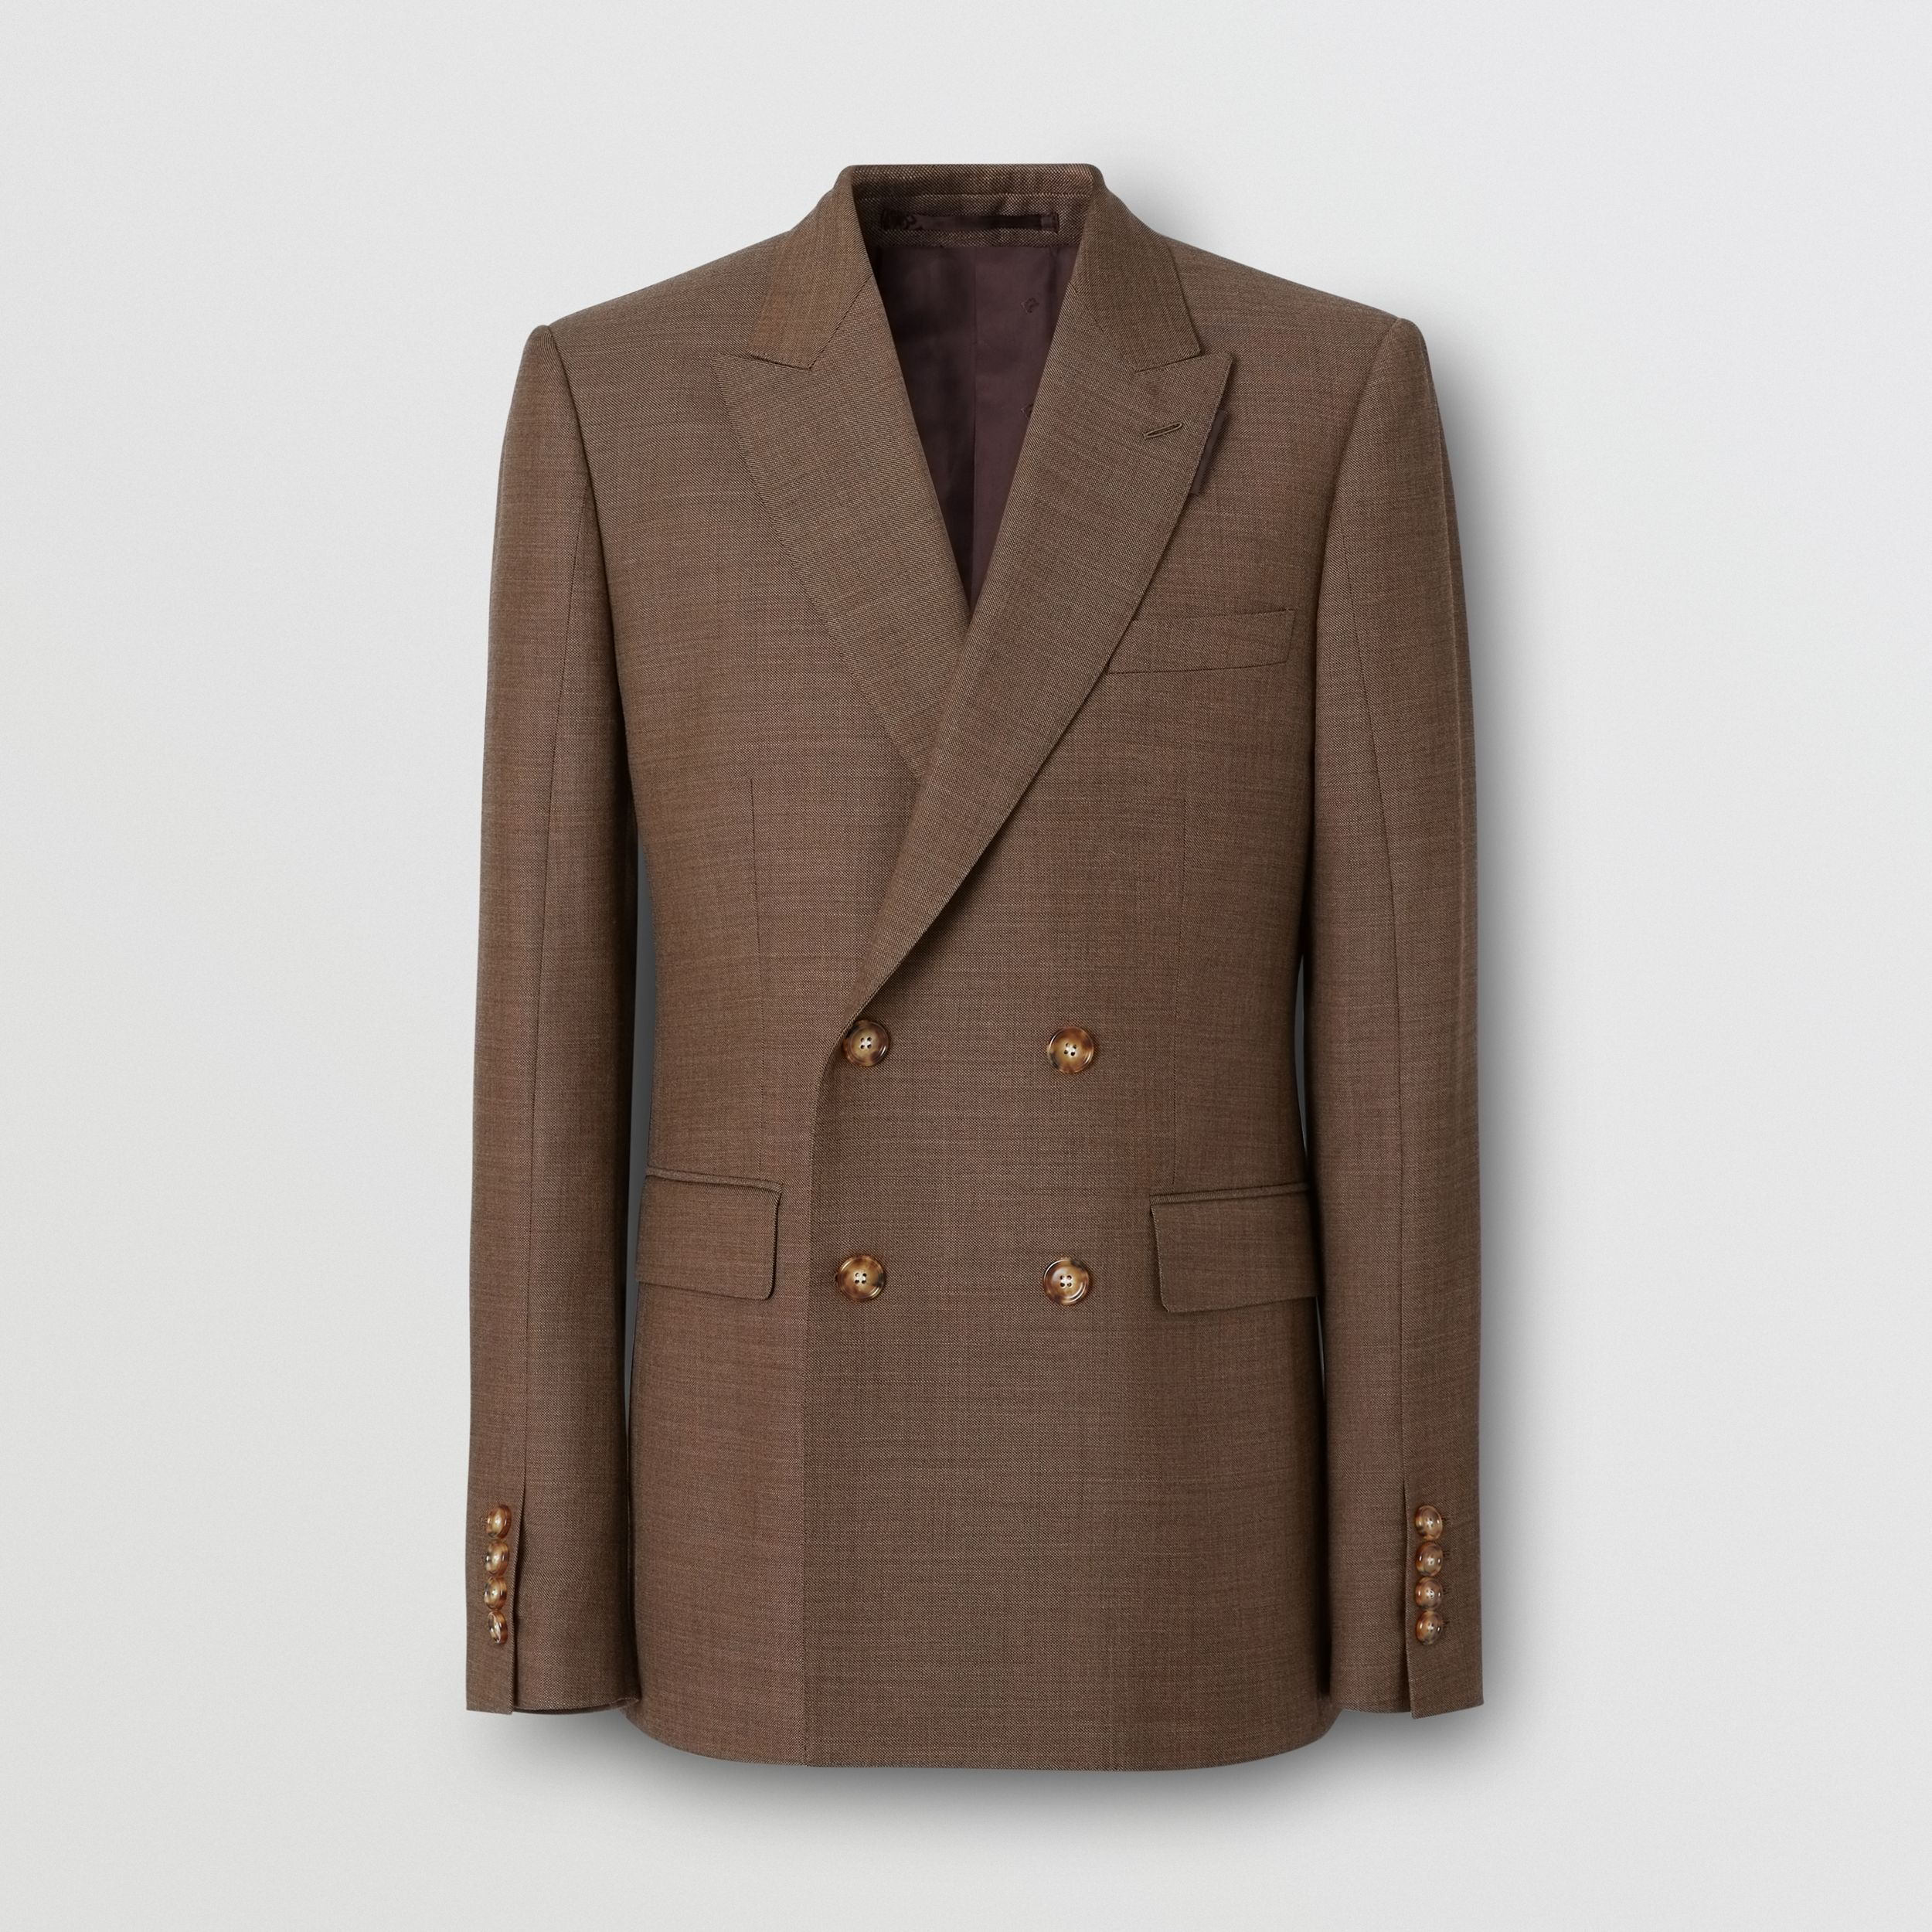 English Fit Sharkskin Wool Double-breasted Jacket in Deep Brown - Men | Burberry - 4